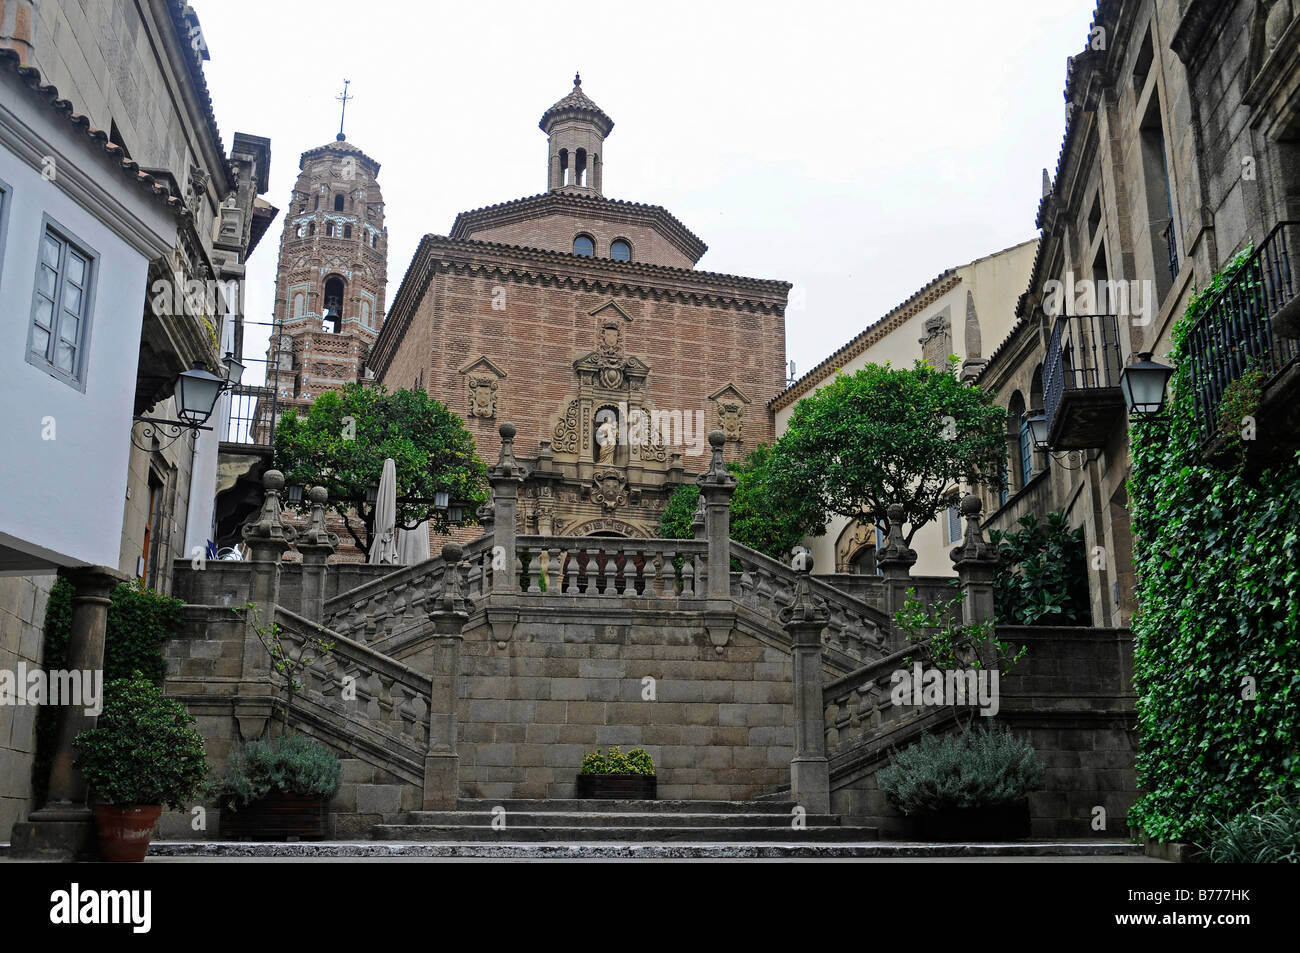 Stairs and church, Poble Espanyol, Spanish village, open-air museum, Montjuic, Barcelona, Catalonia, Spain, Europe Stock Photo